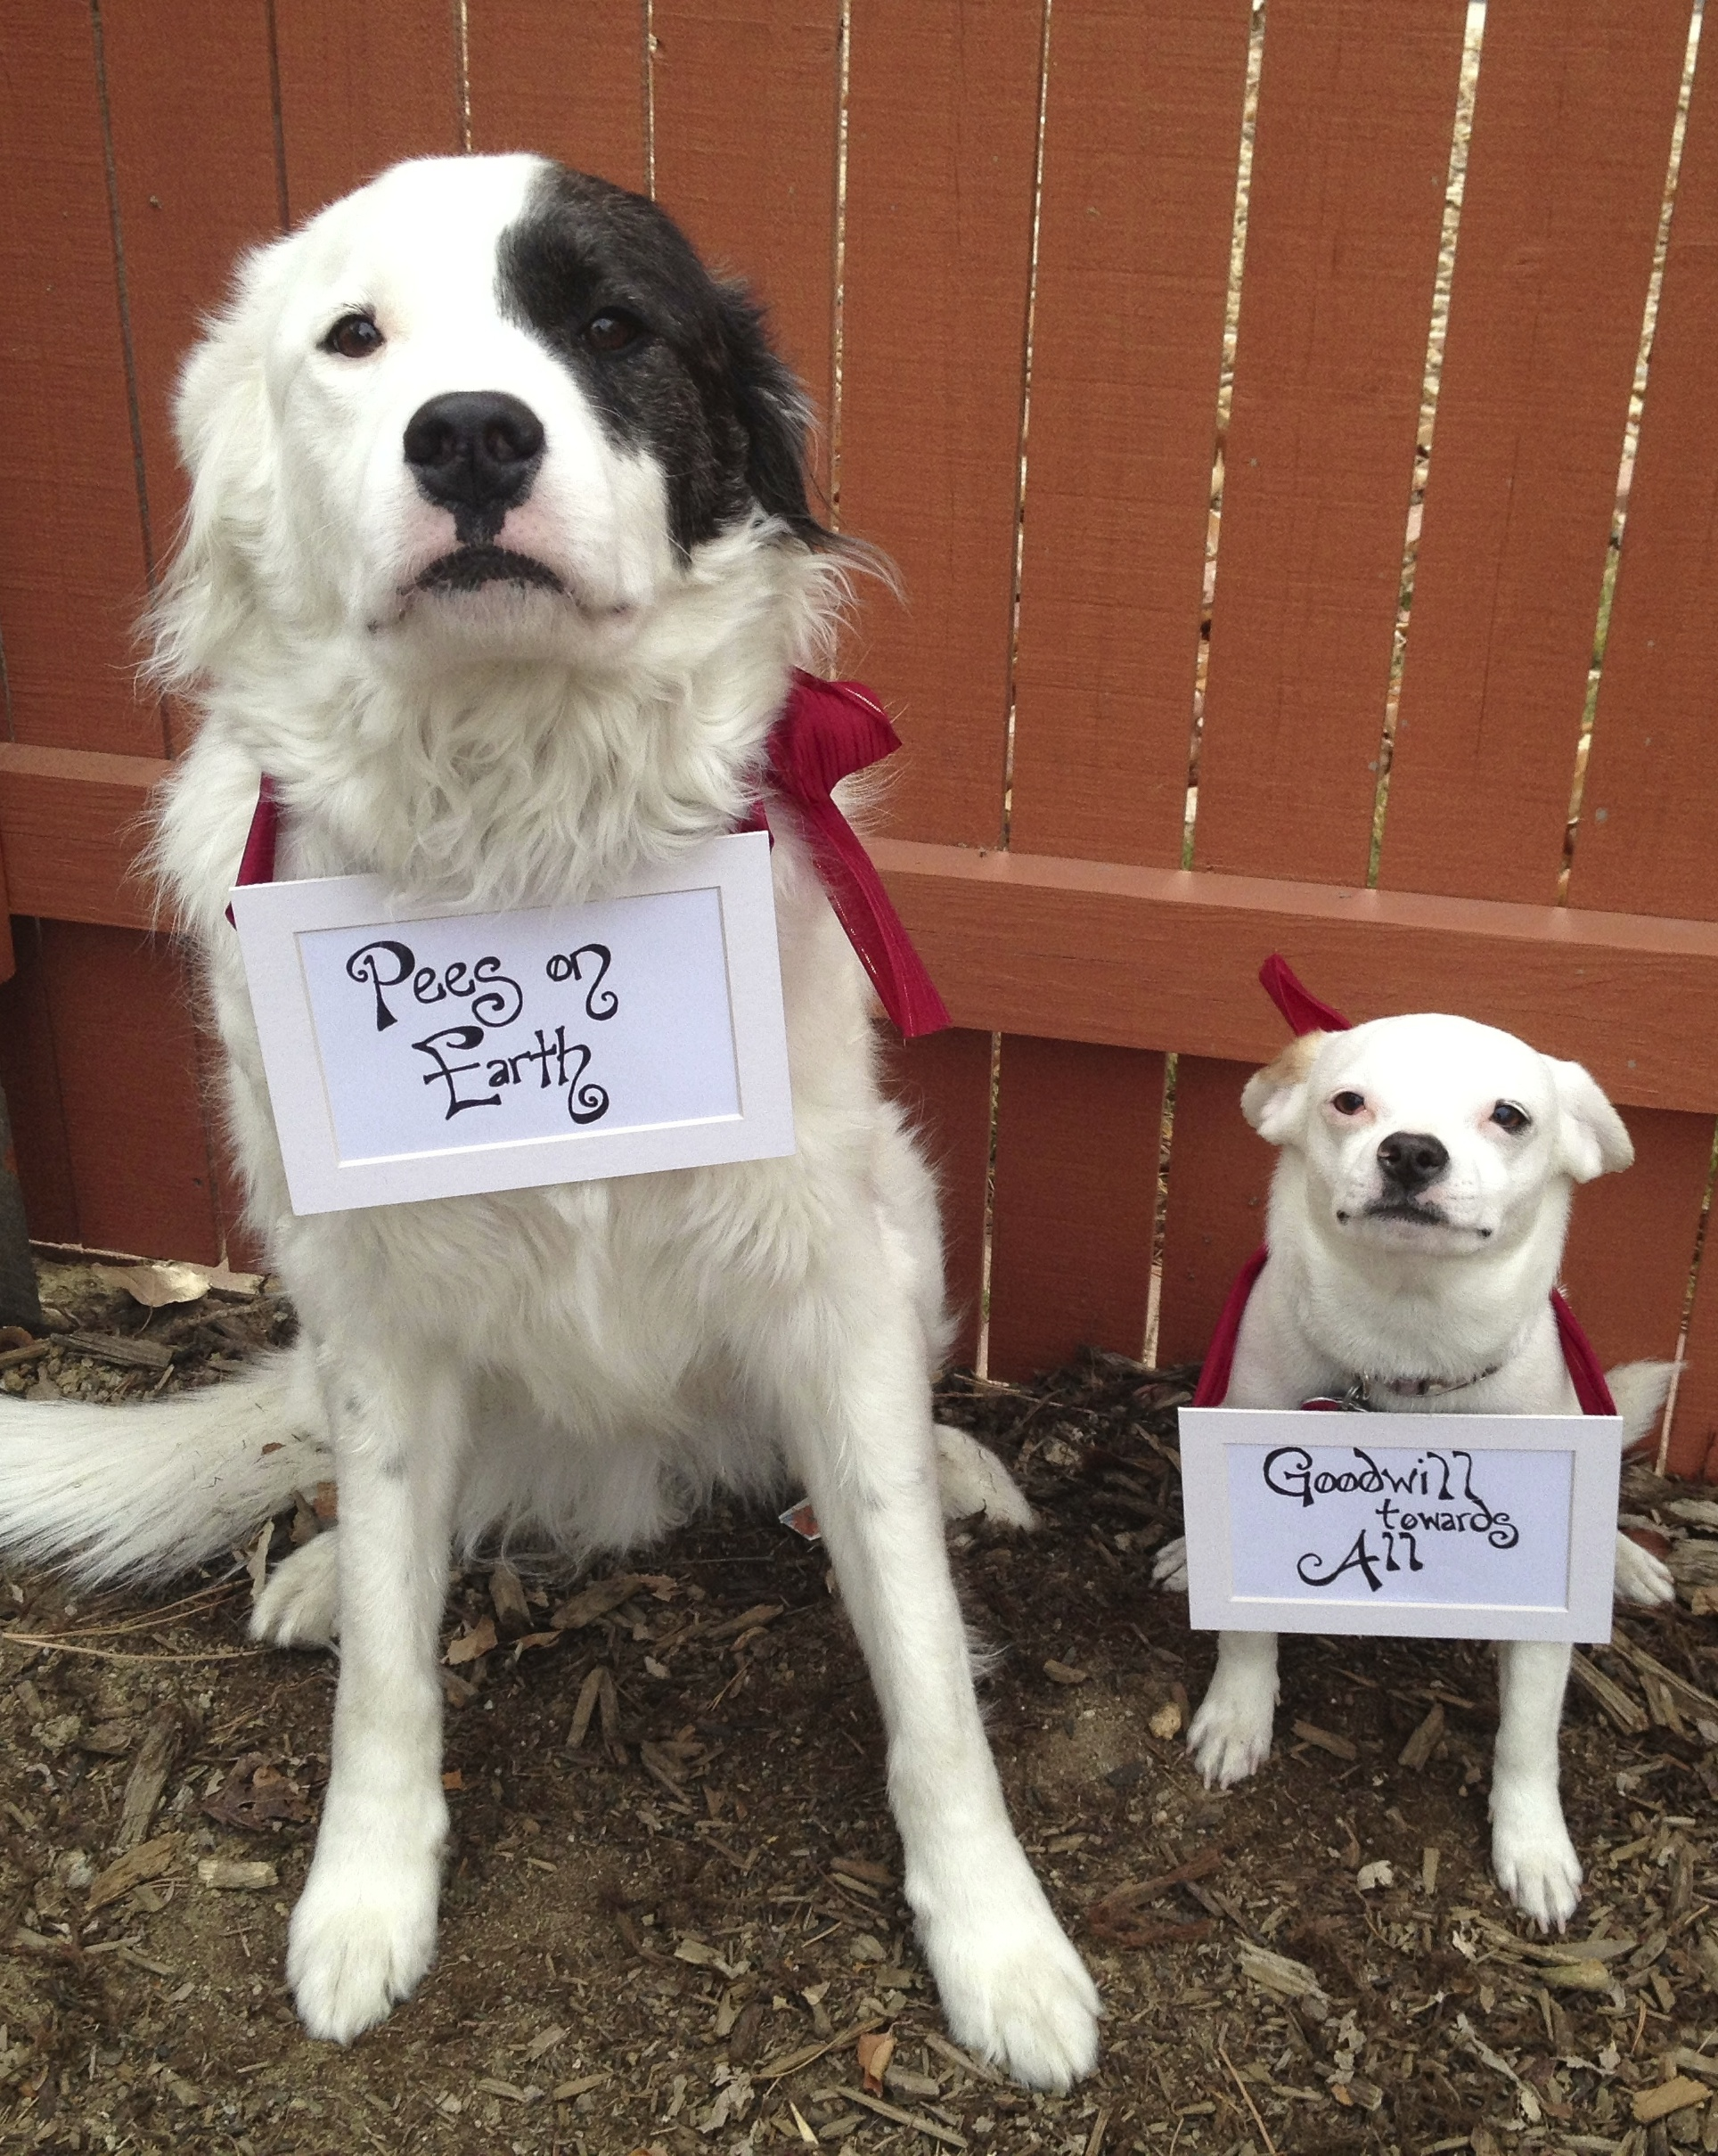 dog holiday dog shaming - Dog Christmas Card Ideas